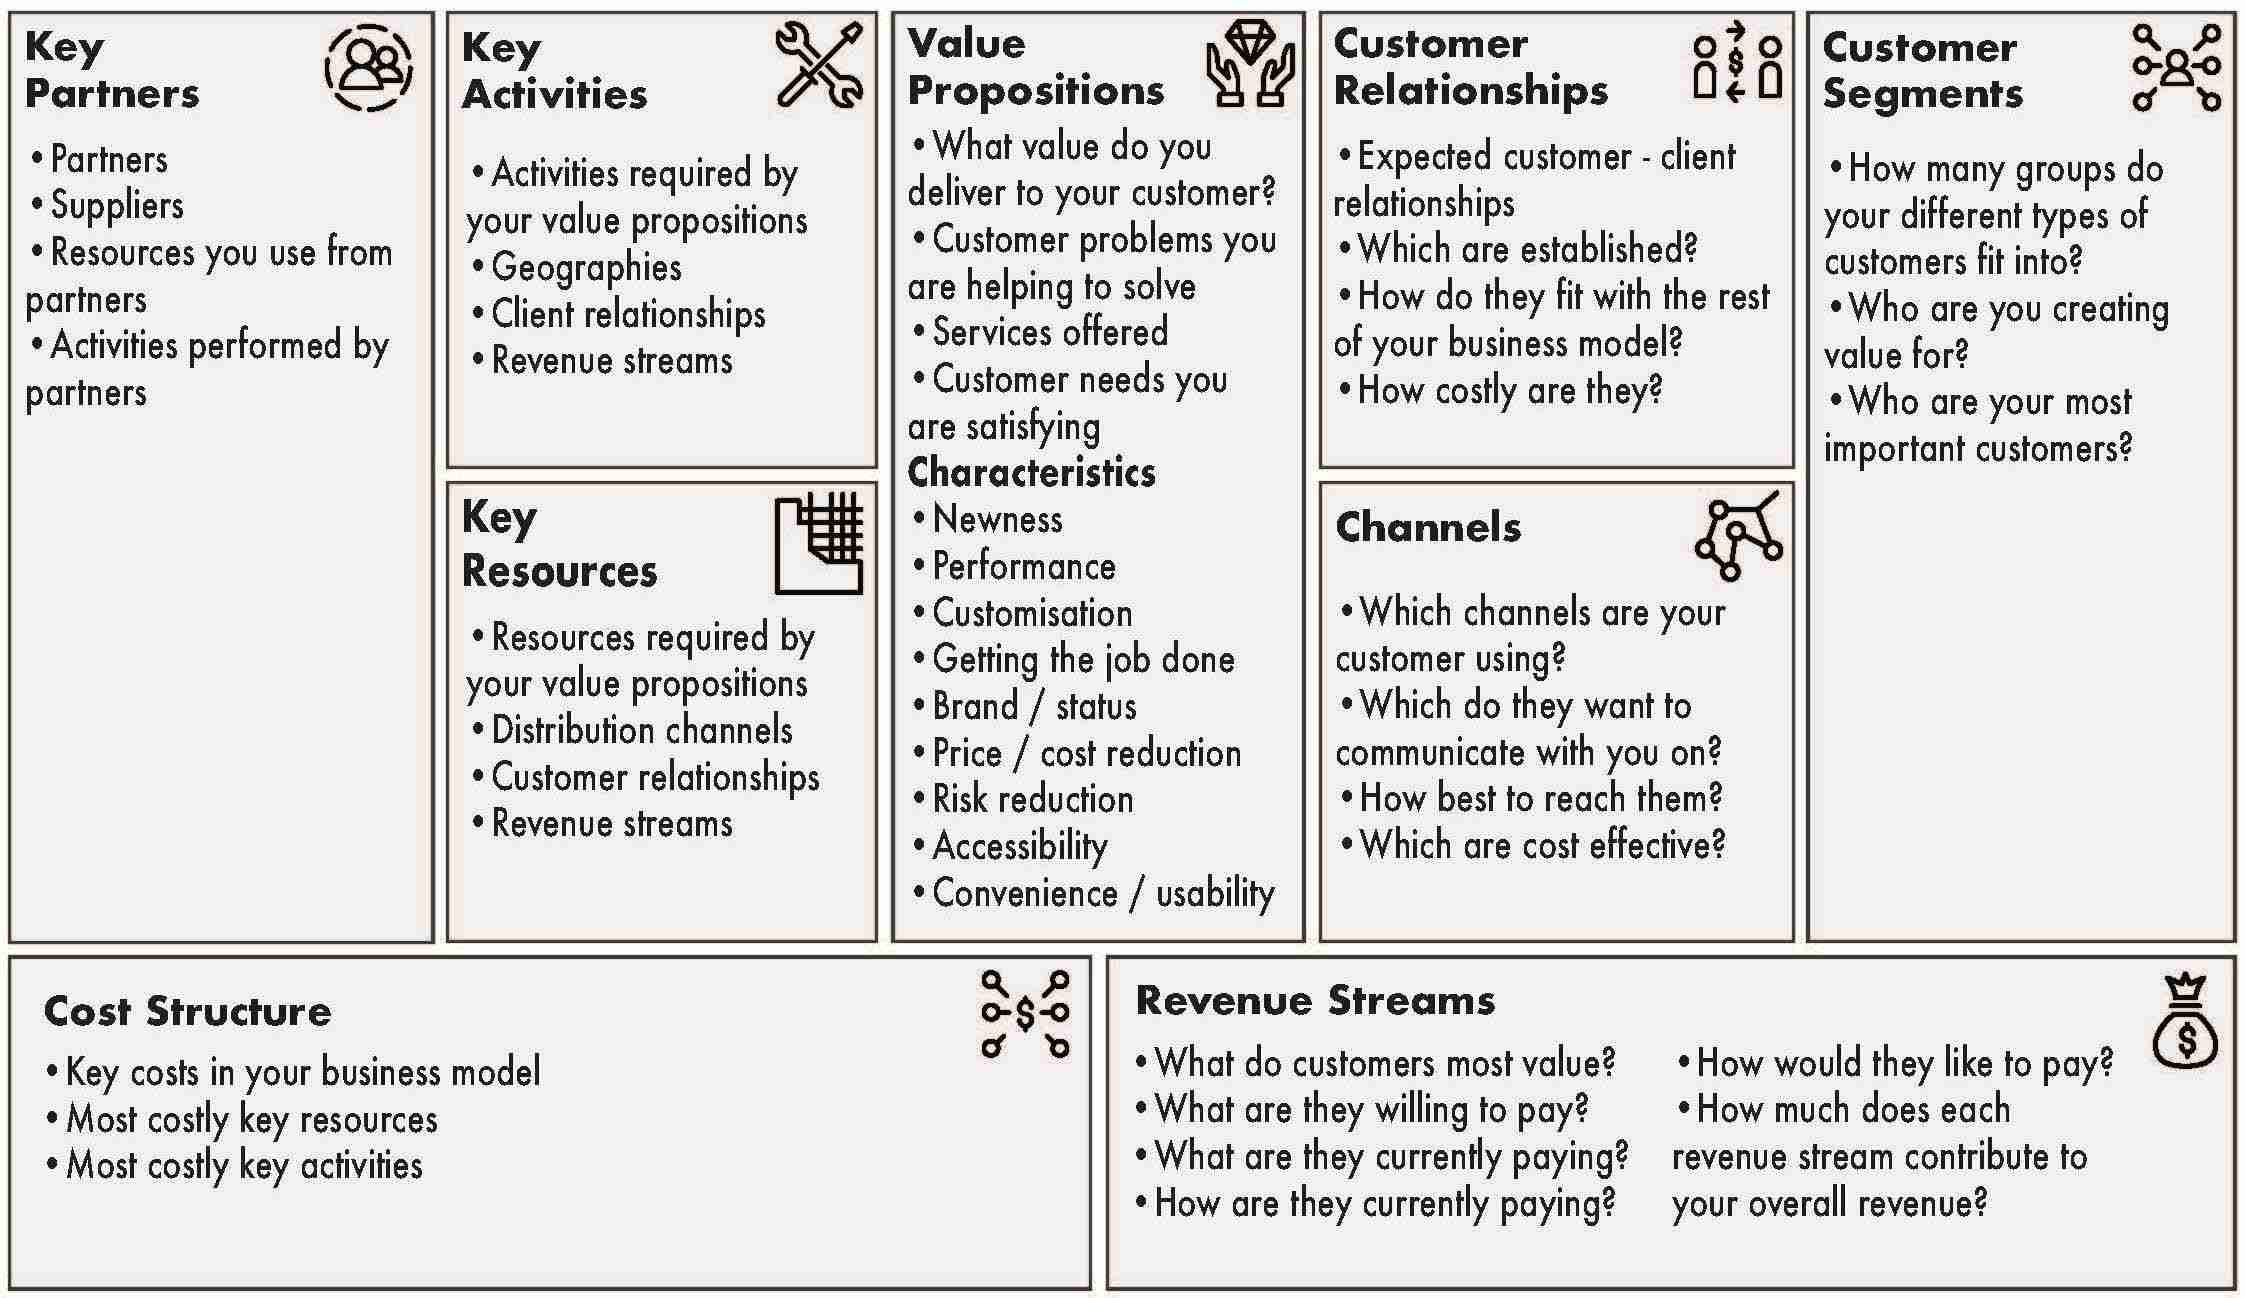 This image shows an example of a completed Free Business Model Canvas Template